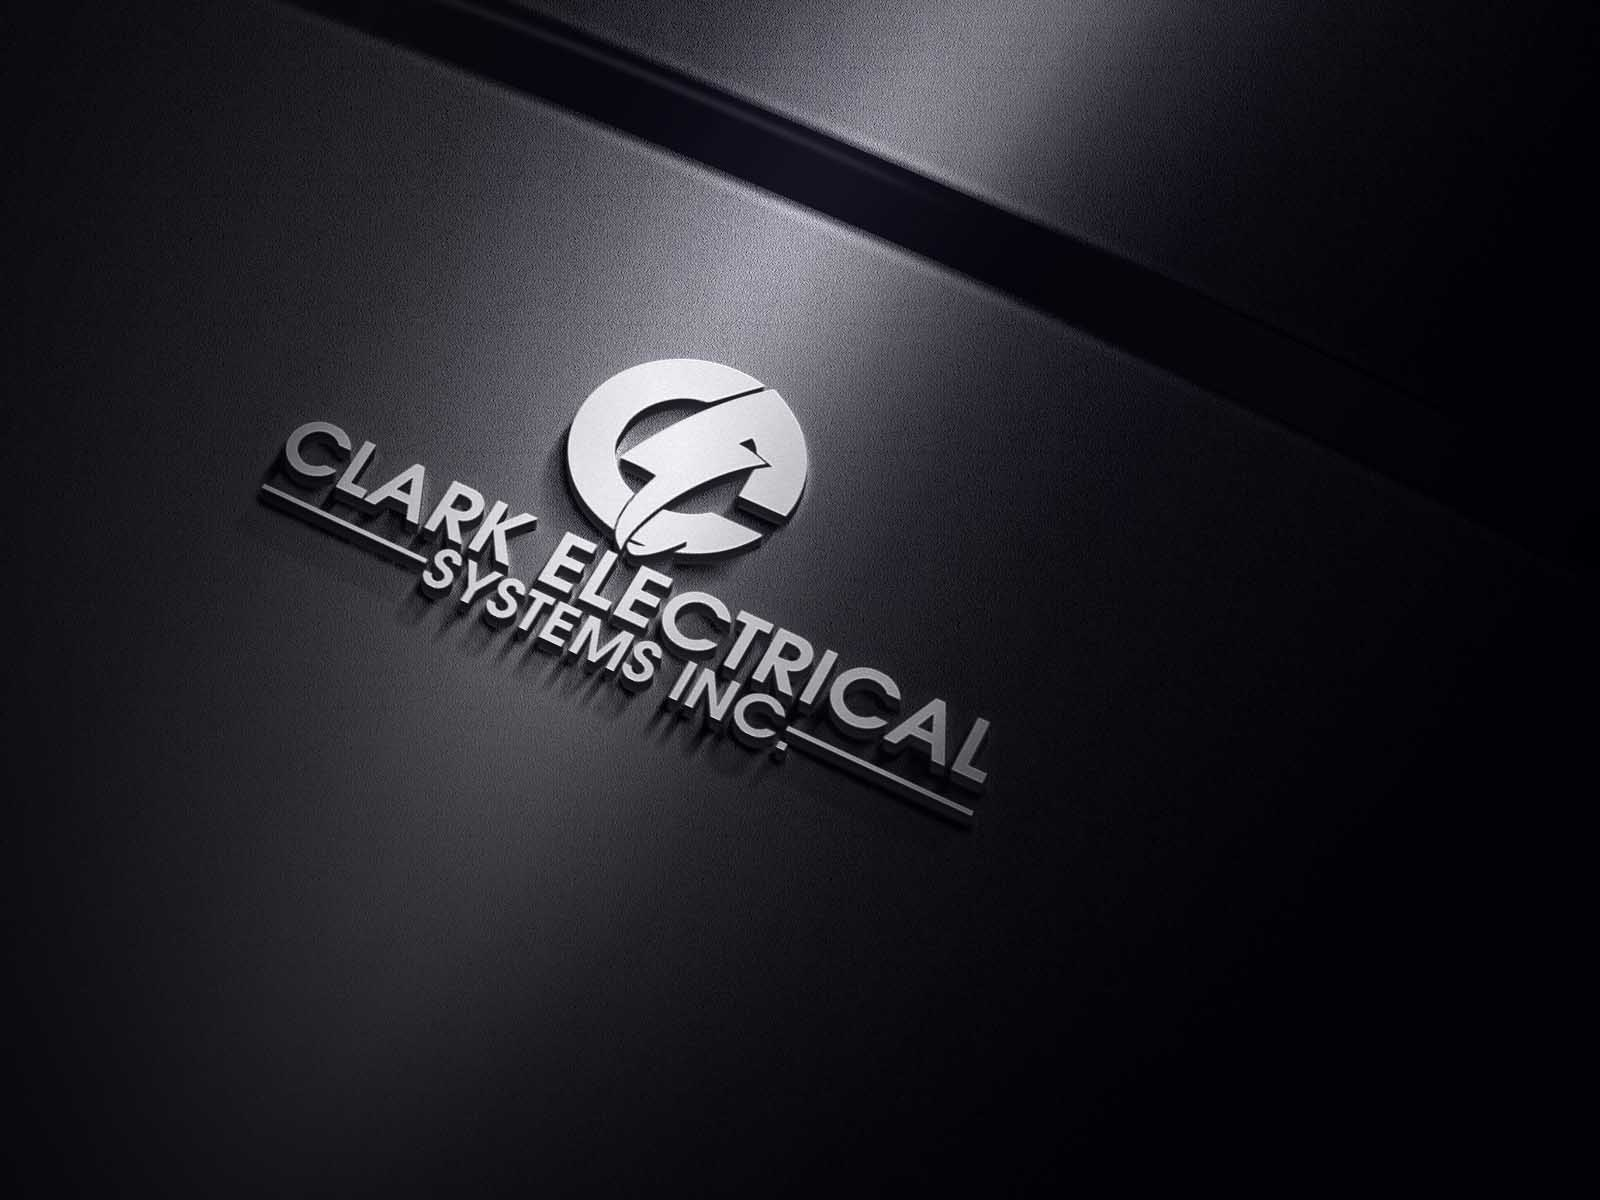 Logo Design by Private User - Entry No. 287 in the Logo Design Contest Artistic Logo Design for Clark Electrical Systems Inc..